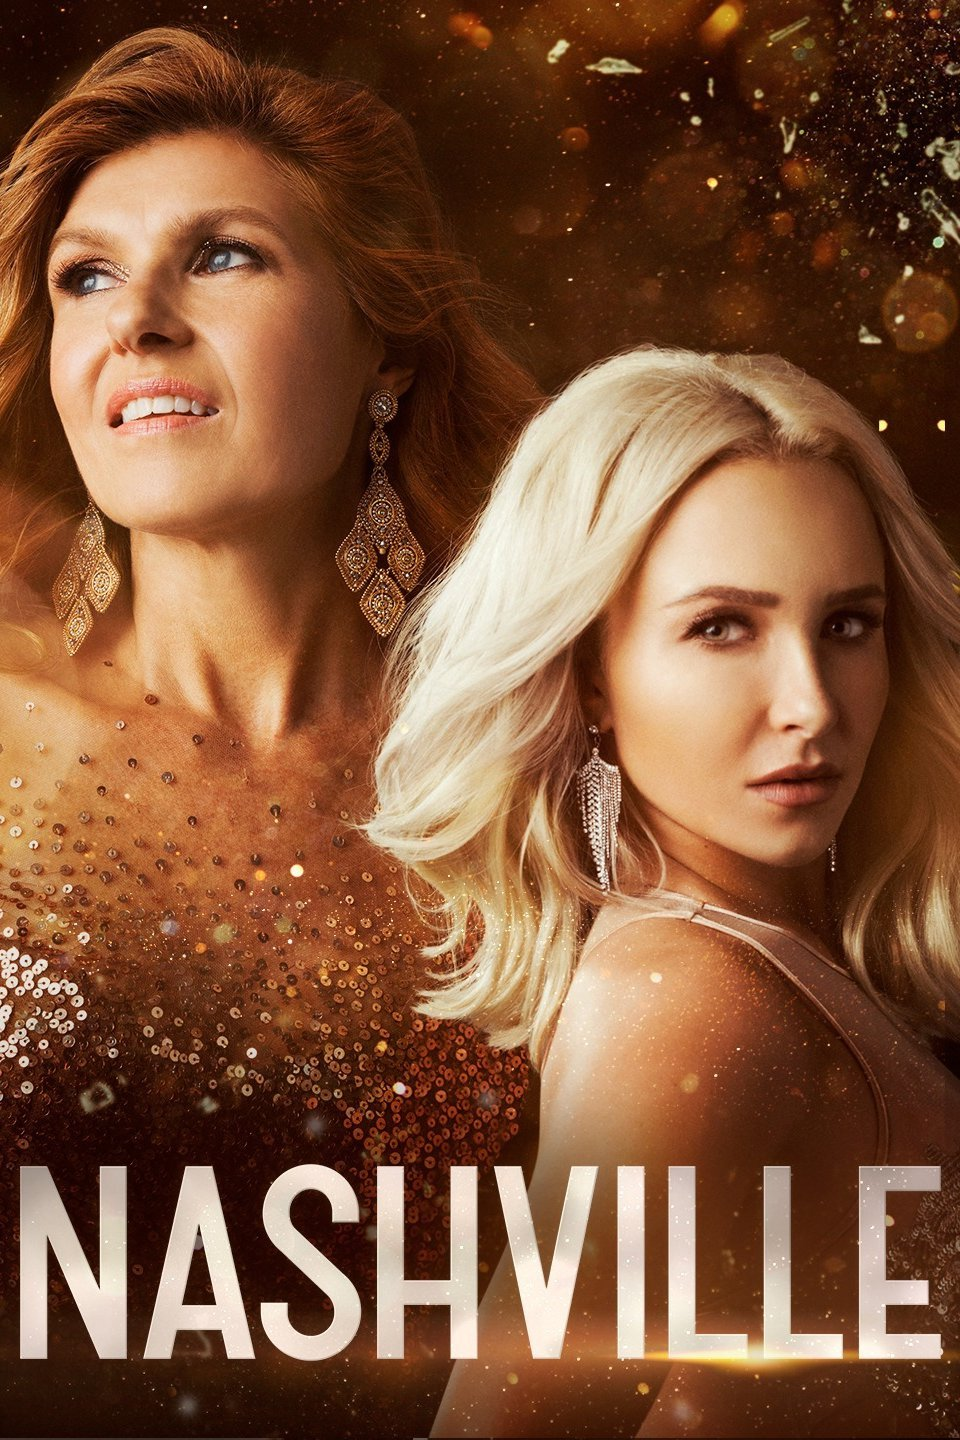 Nashville Season 5 Episode 3 480p WEB-DL 150MB